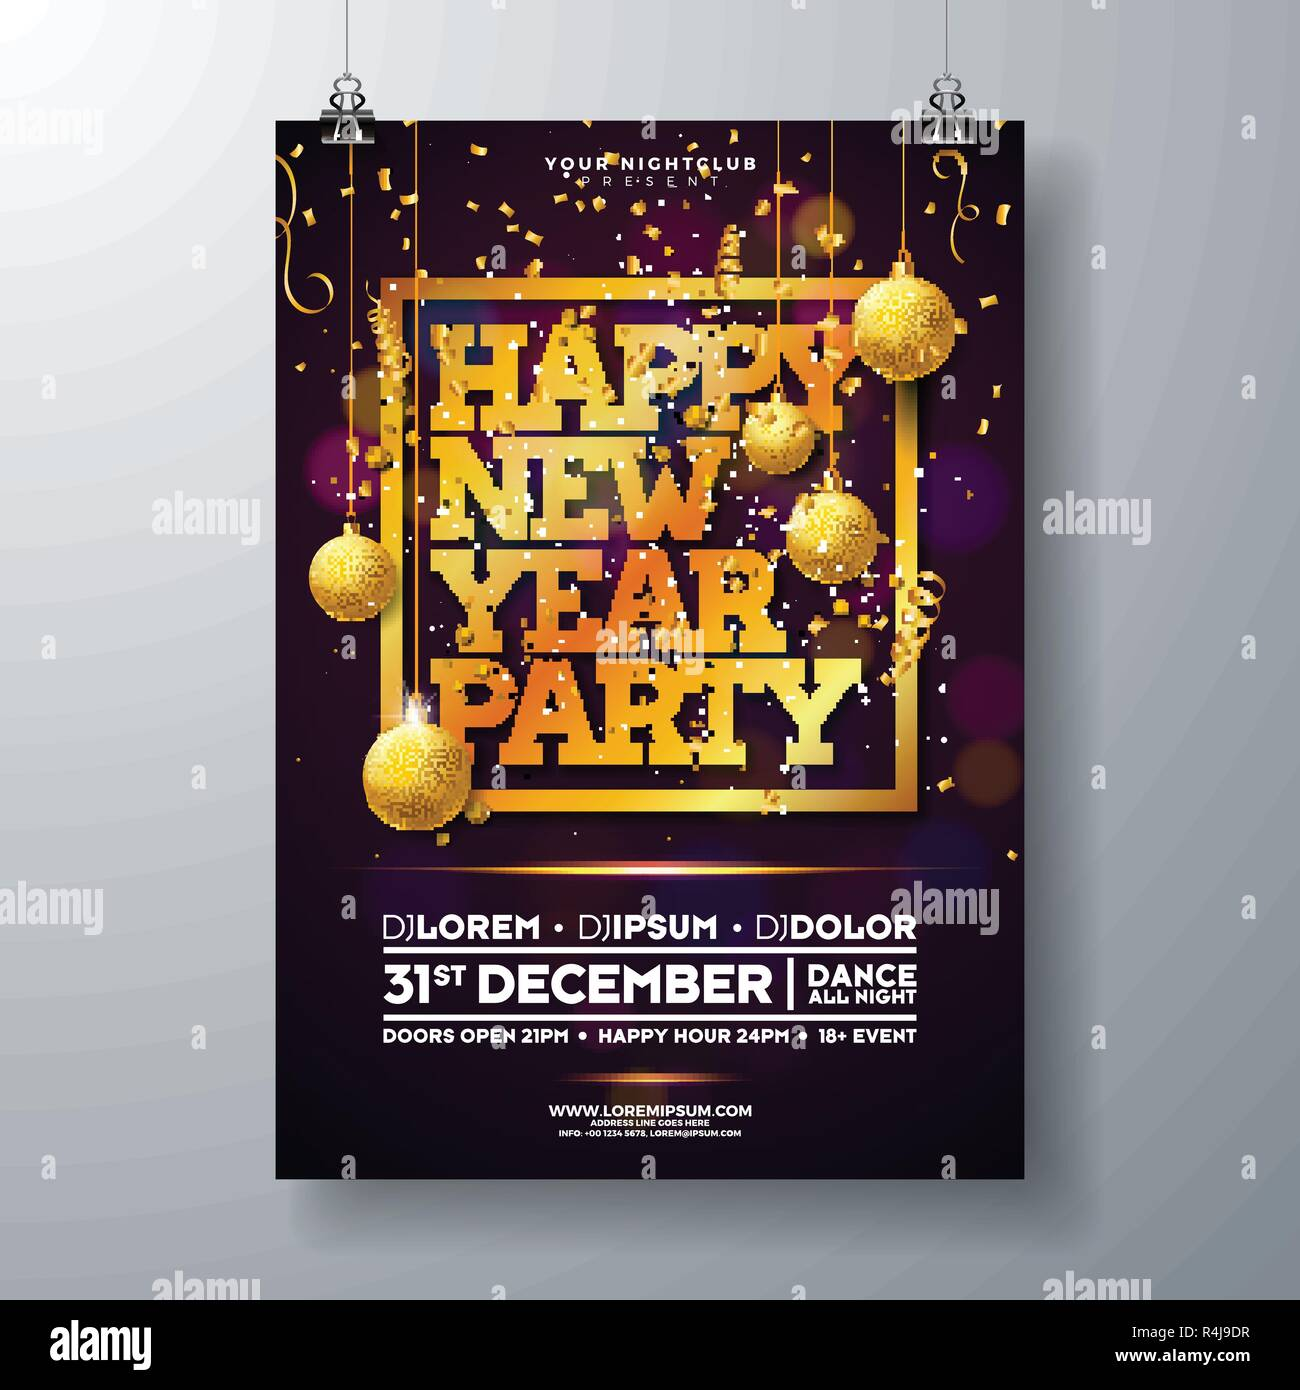 new year party celebration poster template illustration with typography design glass ball and falling confetti on shiny colorful background